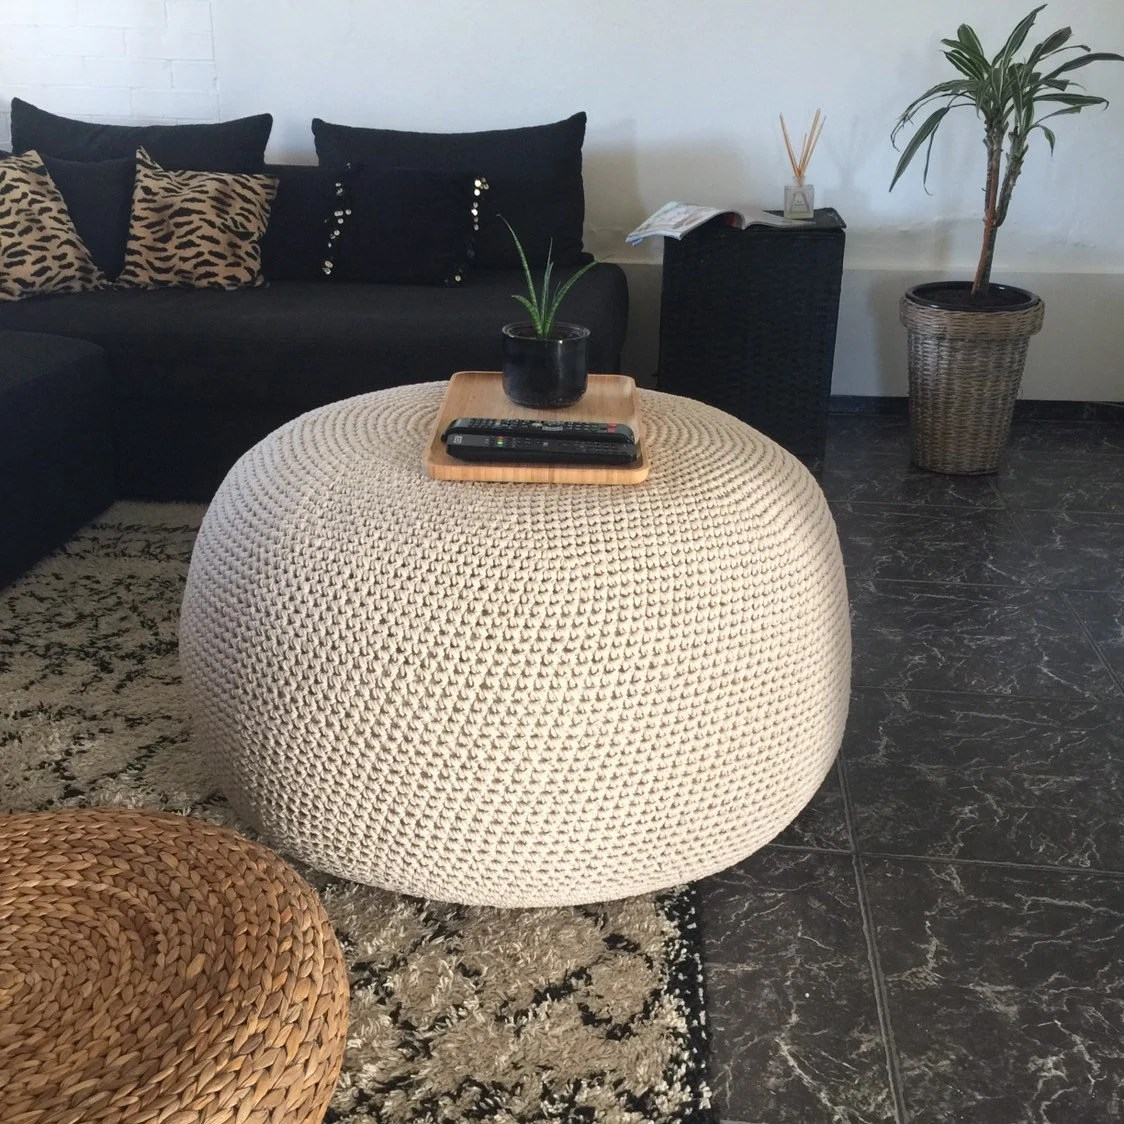 large round ottoman coffee table giant crochet pouf xxxl knitted bean bag chair modern living room decor